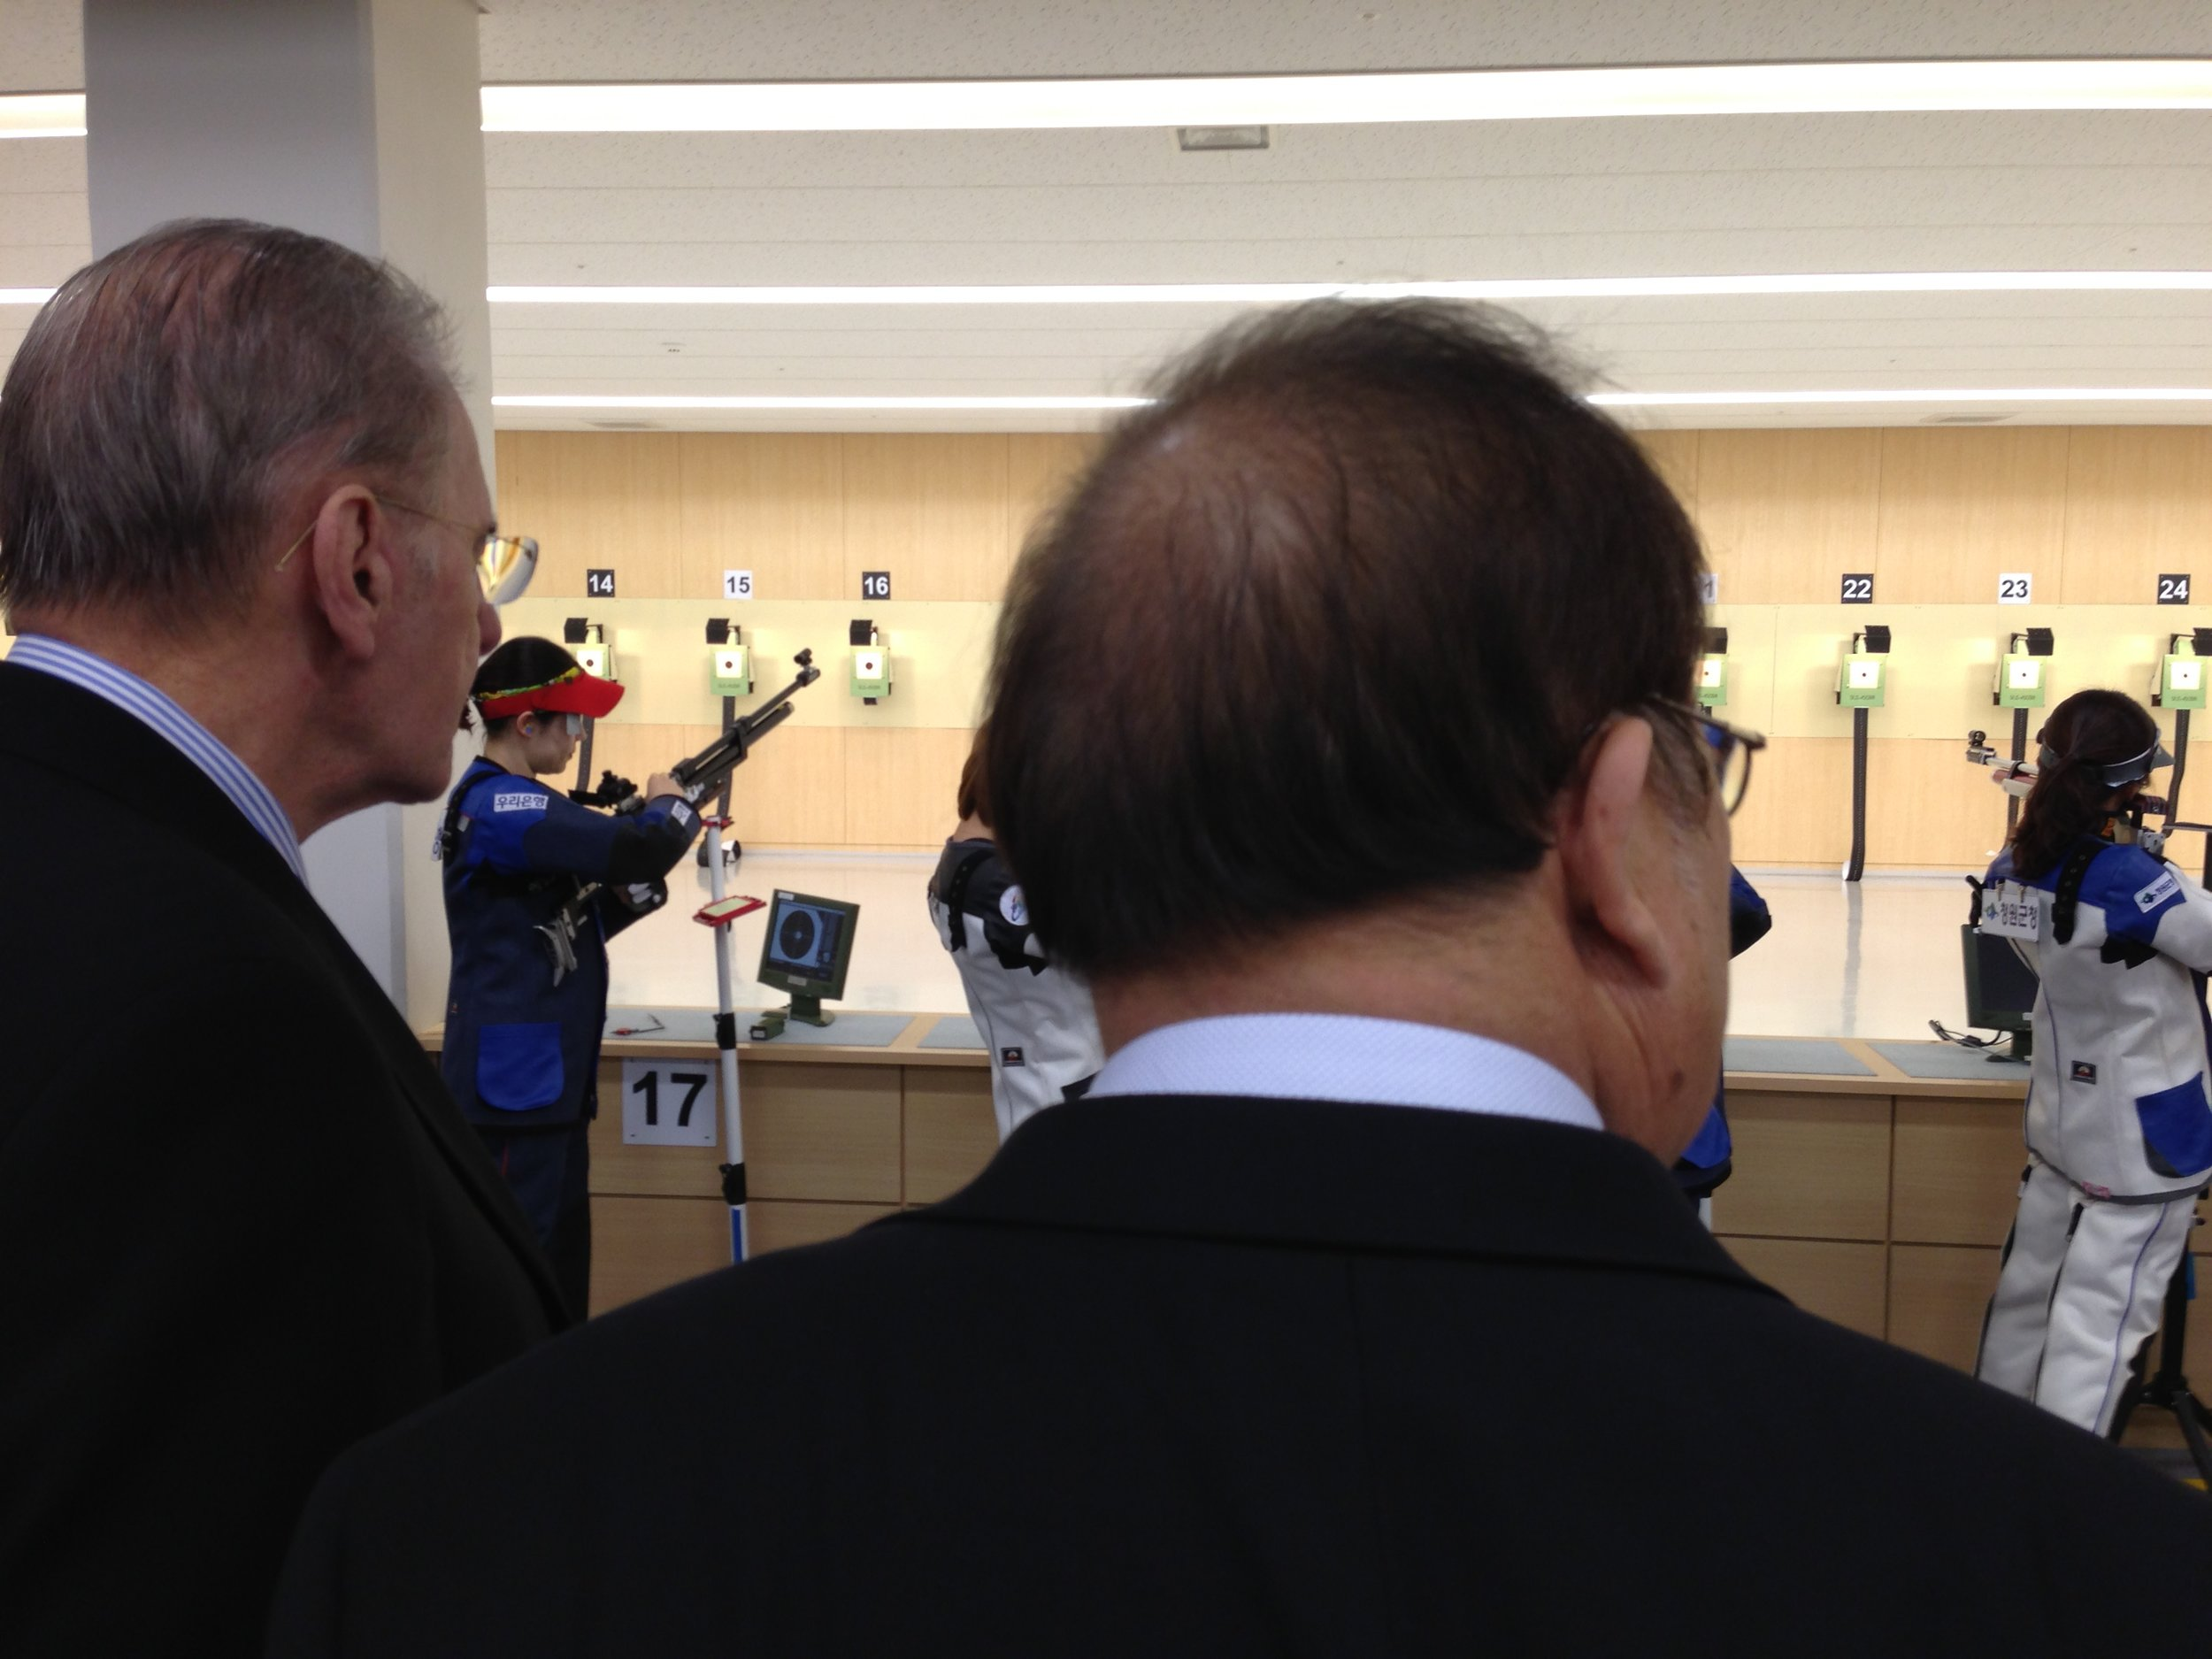 Jacques Rogge, the IOC president, left, watches Korean shooters practice at the Jincheon National Training Center